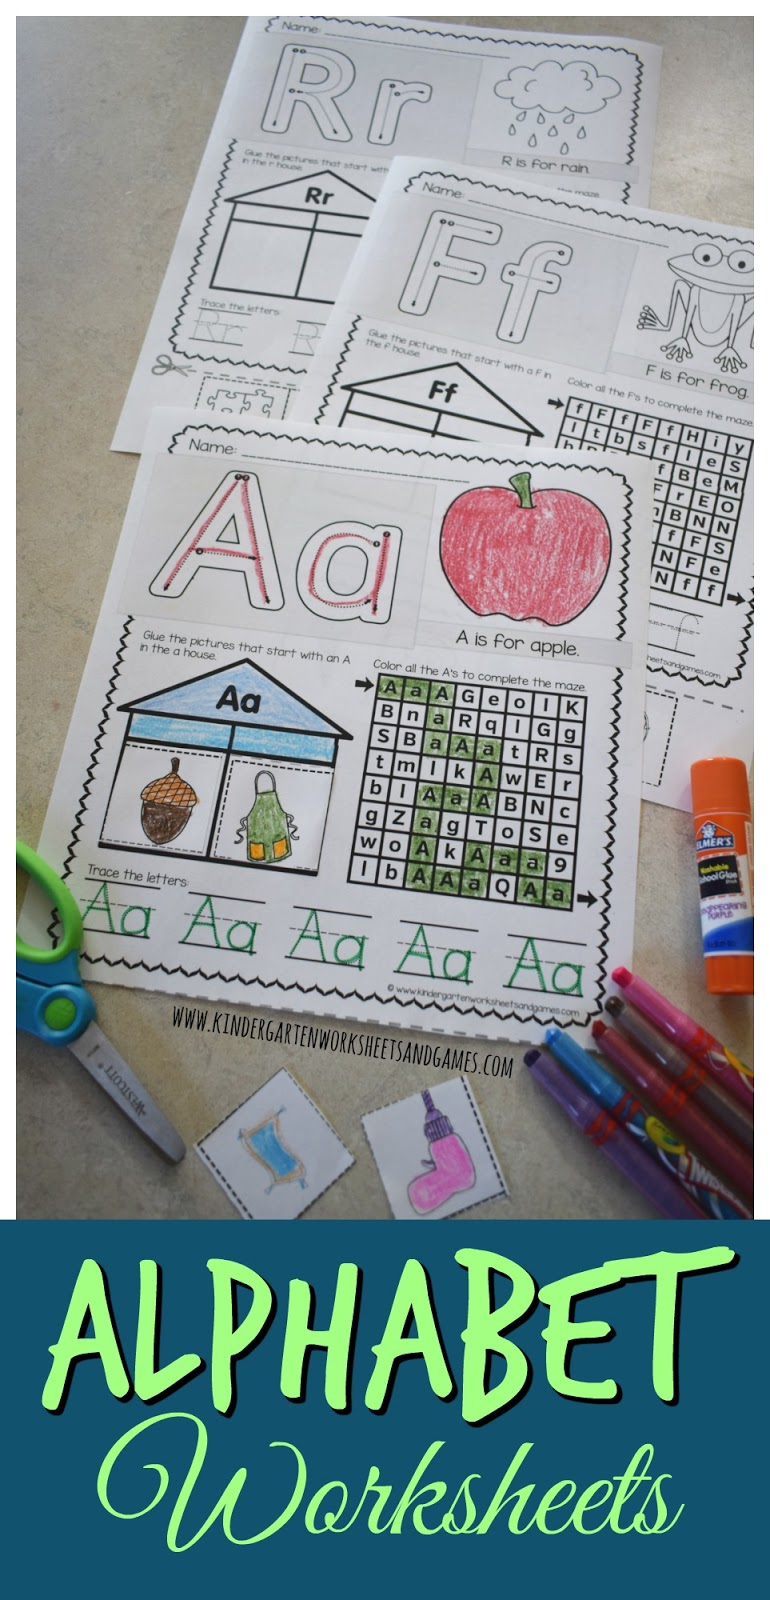 FREE Alphabet Worksheets – Kindergarten Worksheets and Games on printable i worksheets, kindergarten alphabet printouts, kindergarten alphabet art, kindergarten letter f activity book, color by number worksheets, kindergarten parts of the body, handwriting worksheets, kindergarten alphabet chart, b and d coloring worksheets, kindergarten alphabet posters, kindergarten writing alphabet, kindergarten alphabet patterns, kindergarten alphabet coloring pages, letter k worksheets, kindergarten coloring sheets by letters, pre-k sight worksheets, kindergarten alphabet activities, kindergarten alphabet sheet, phonics worksheets, kindergarten alphabet templates,